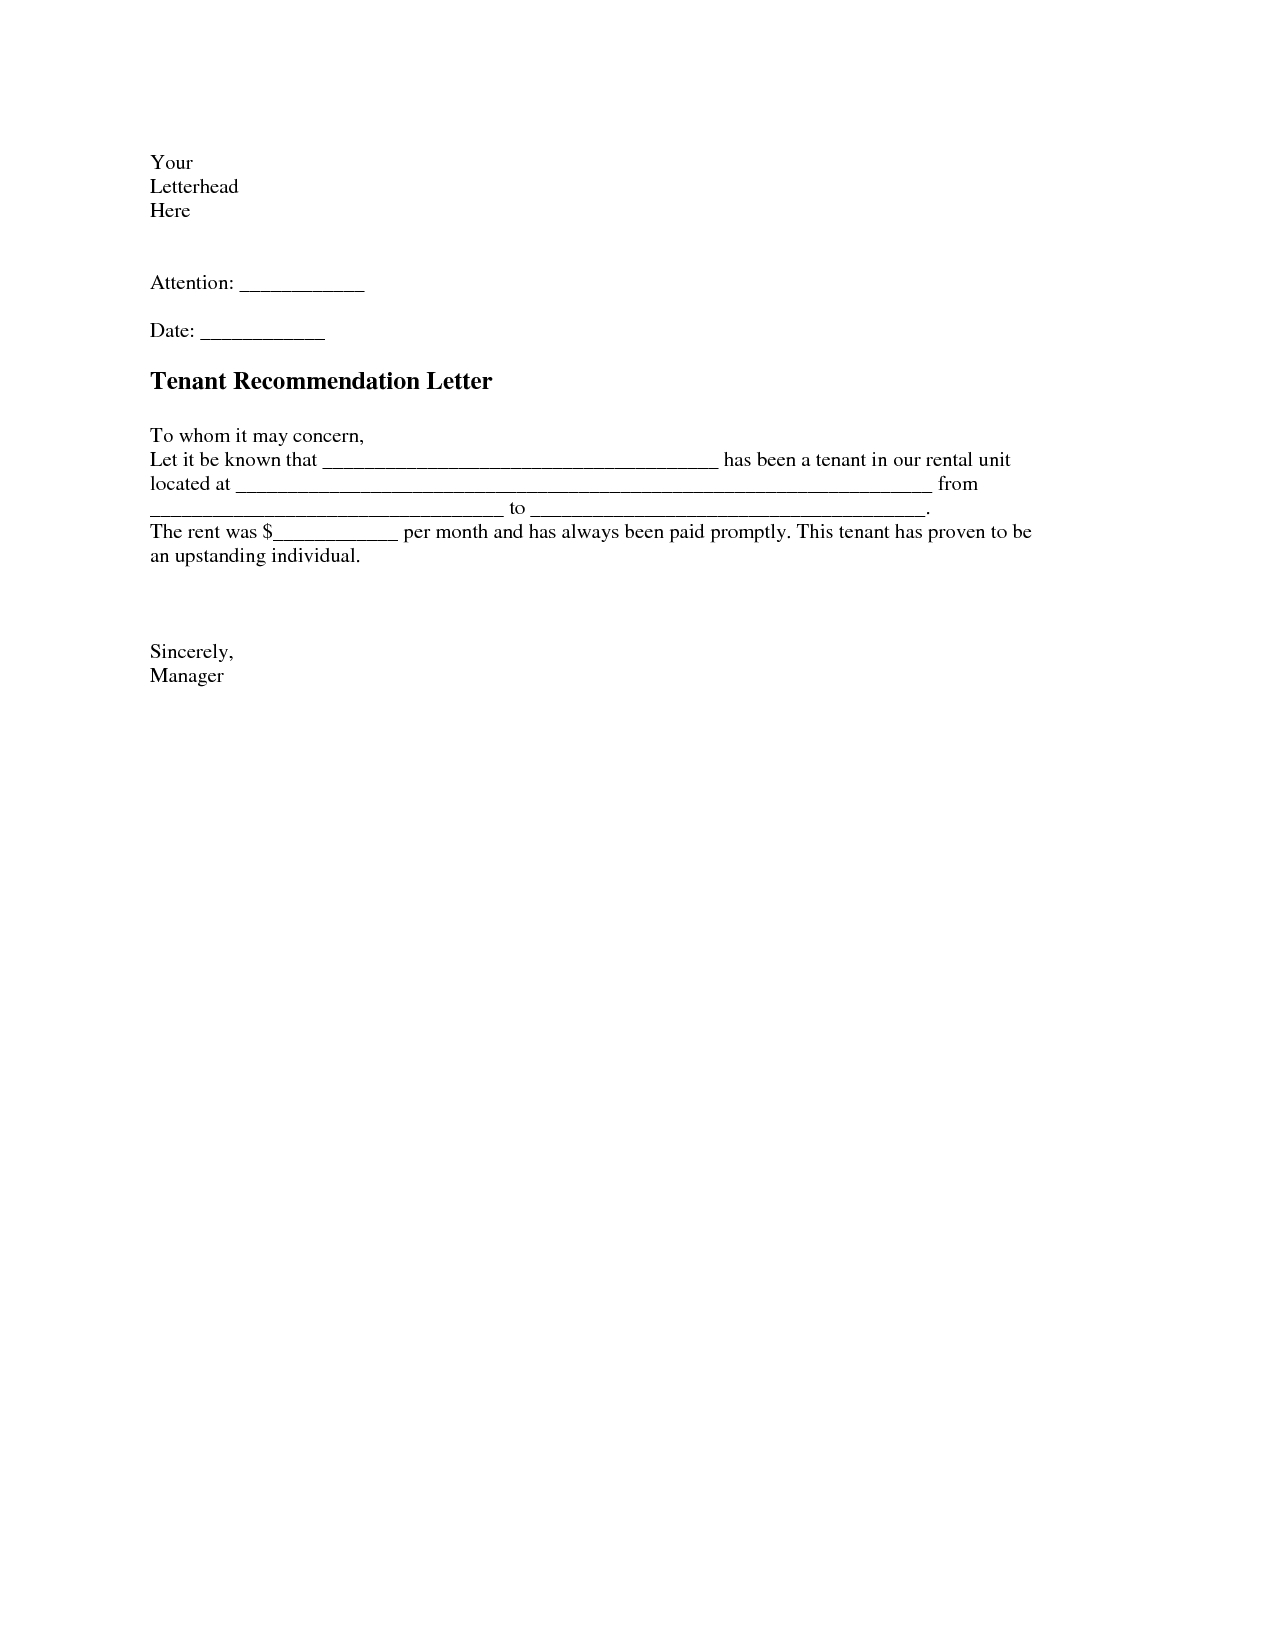 tenant reference letter template Collection-Tenant Re mendation Letter A tenant re mendation letter is usually required by a serious landlord from previous landlords to ensure that the potential 10-c